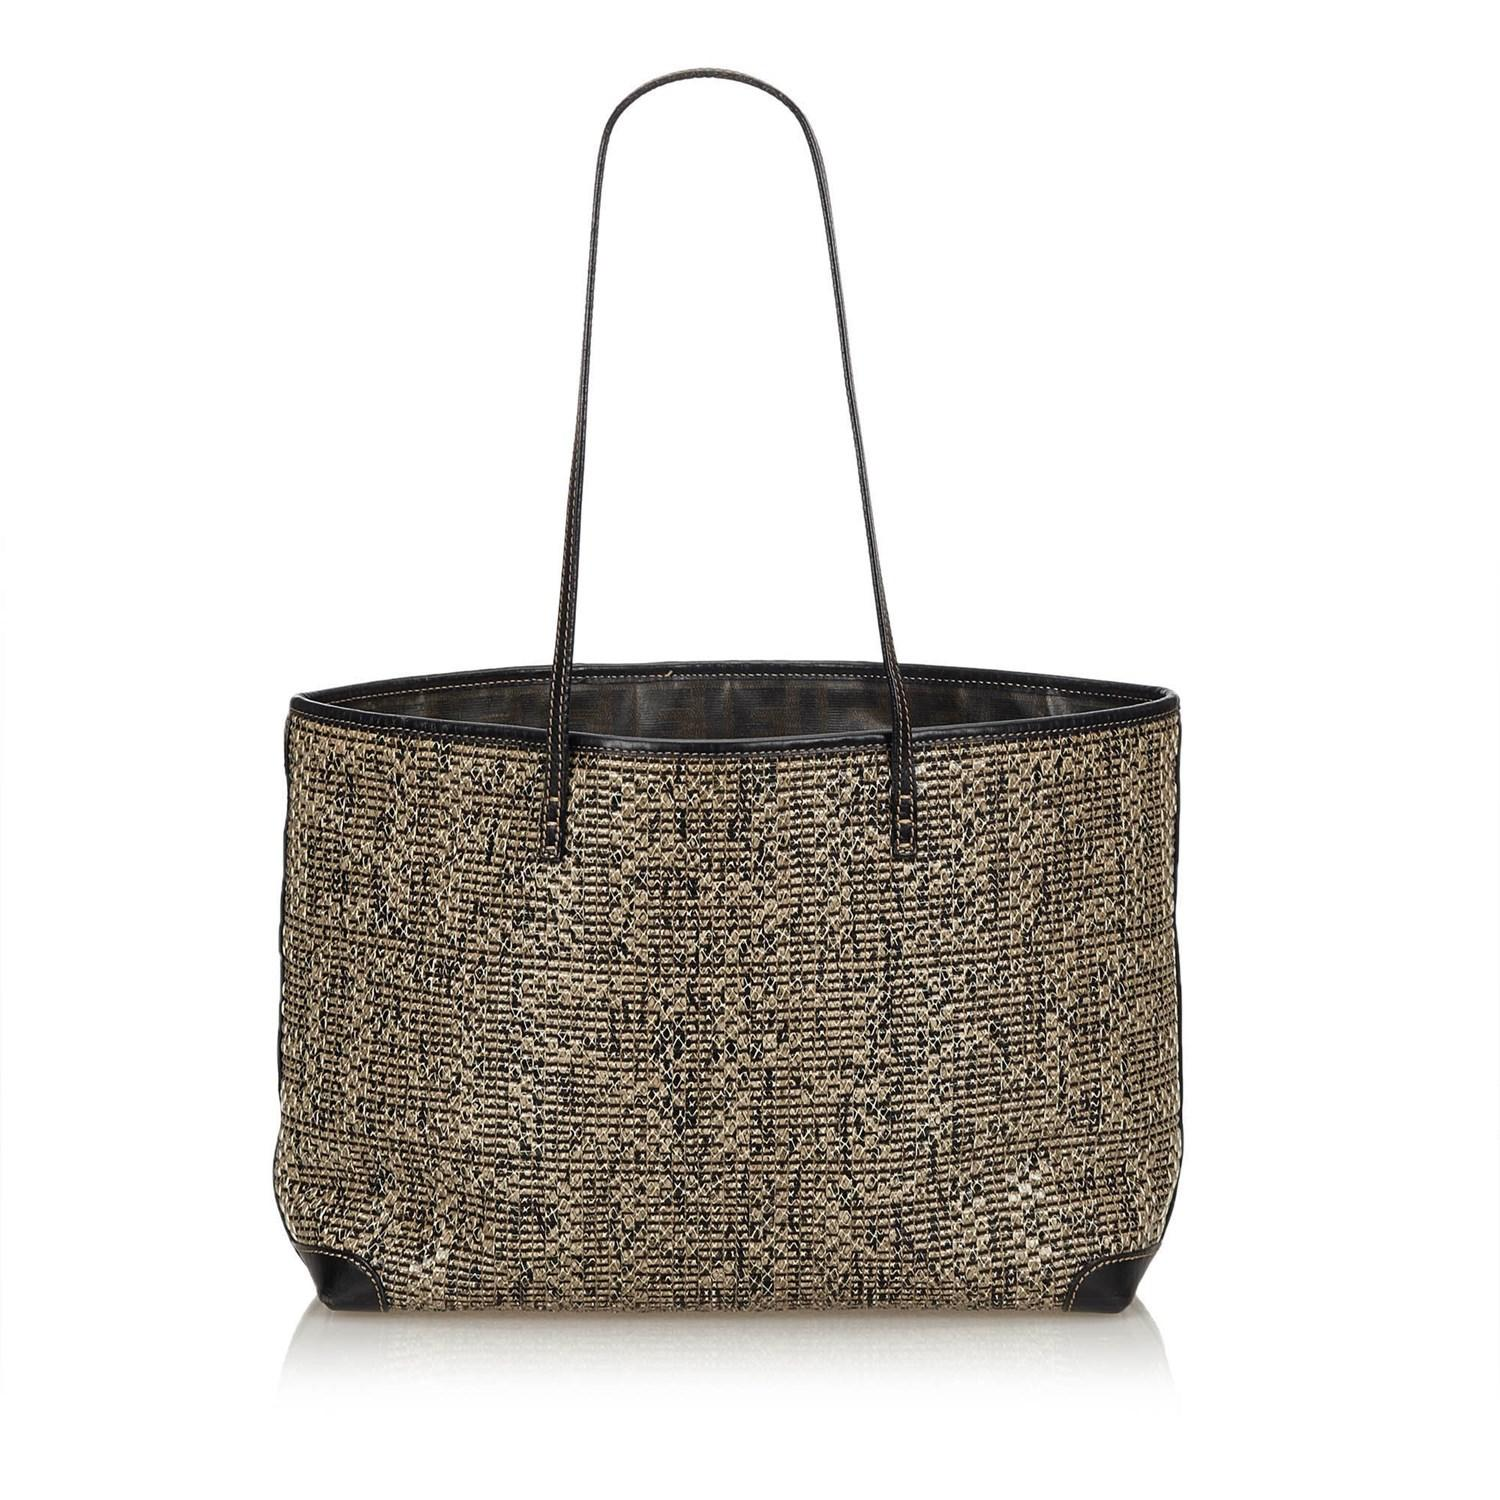 Lyst - Fendi Braided Leather Tote Bag in Brown 29b285628a302